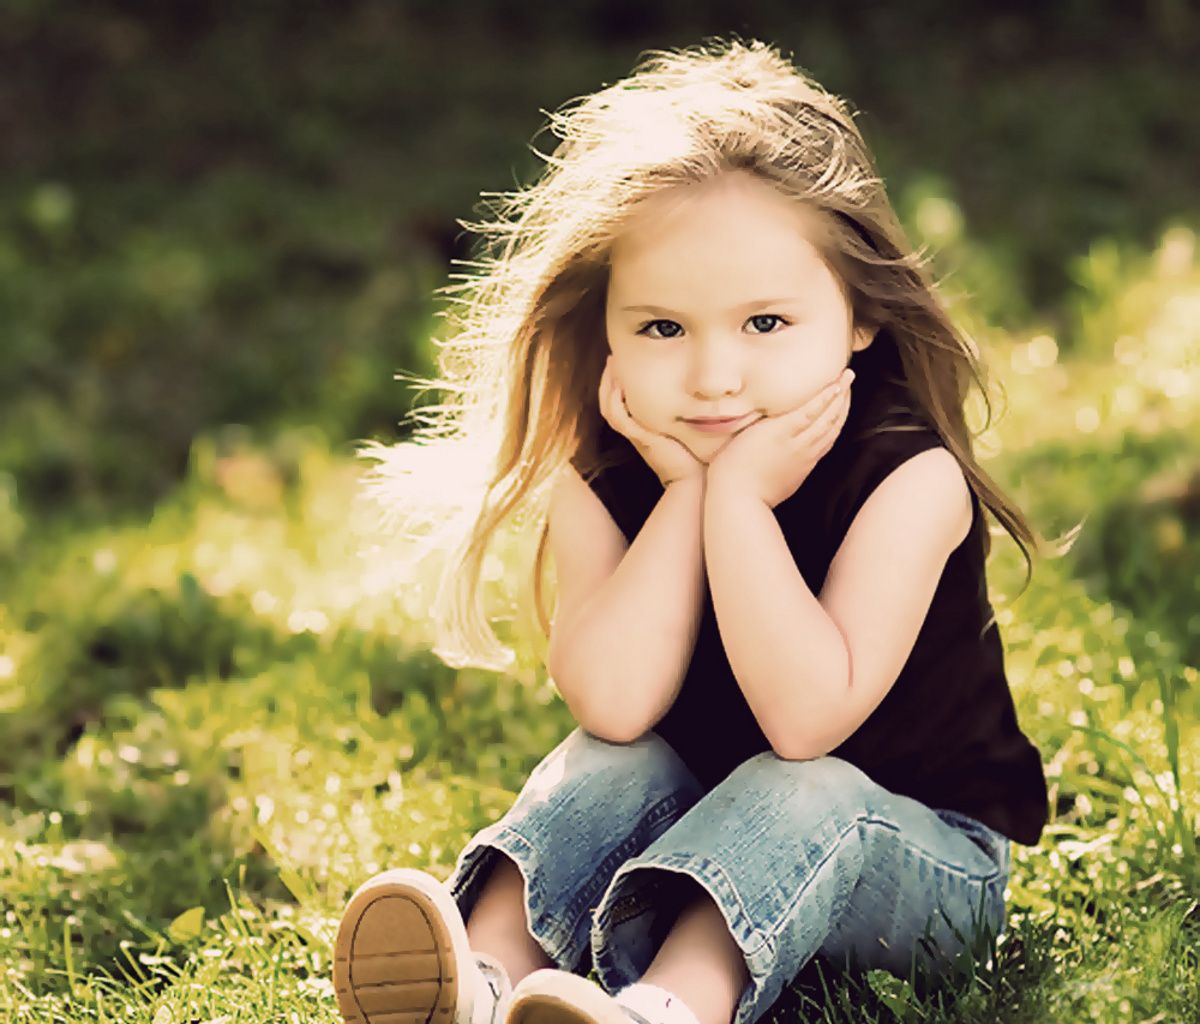 Cute Baby Girl Wallpapers 28 Baby Girl Wallpaper Cute Baby Girl Wallpaper Beautiful Baby Girl